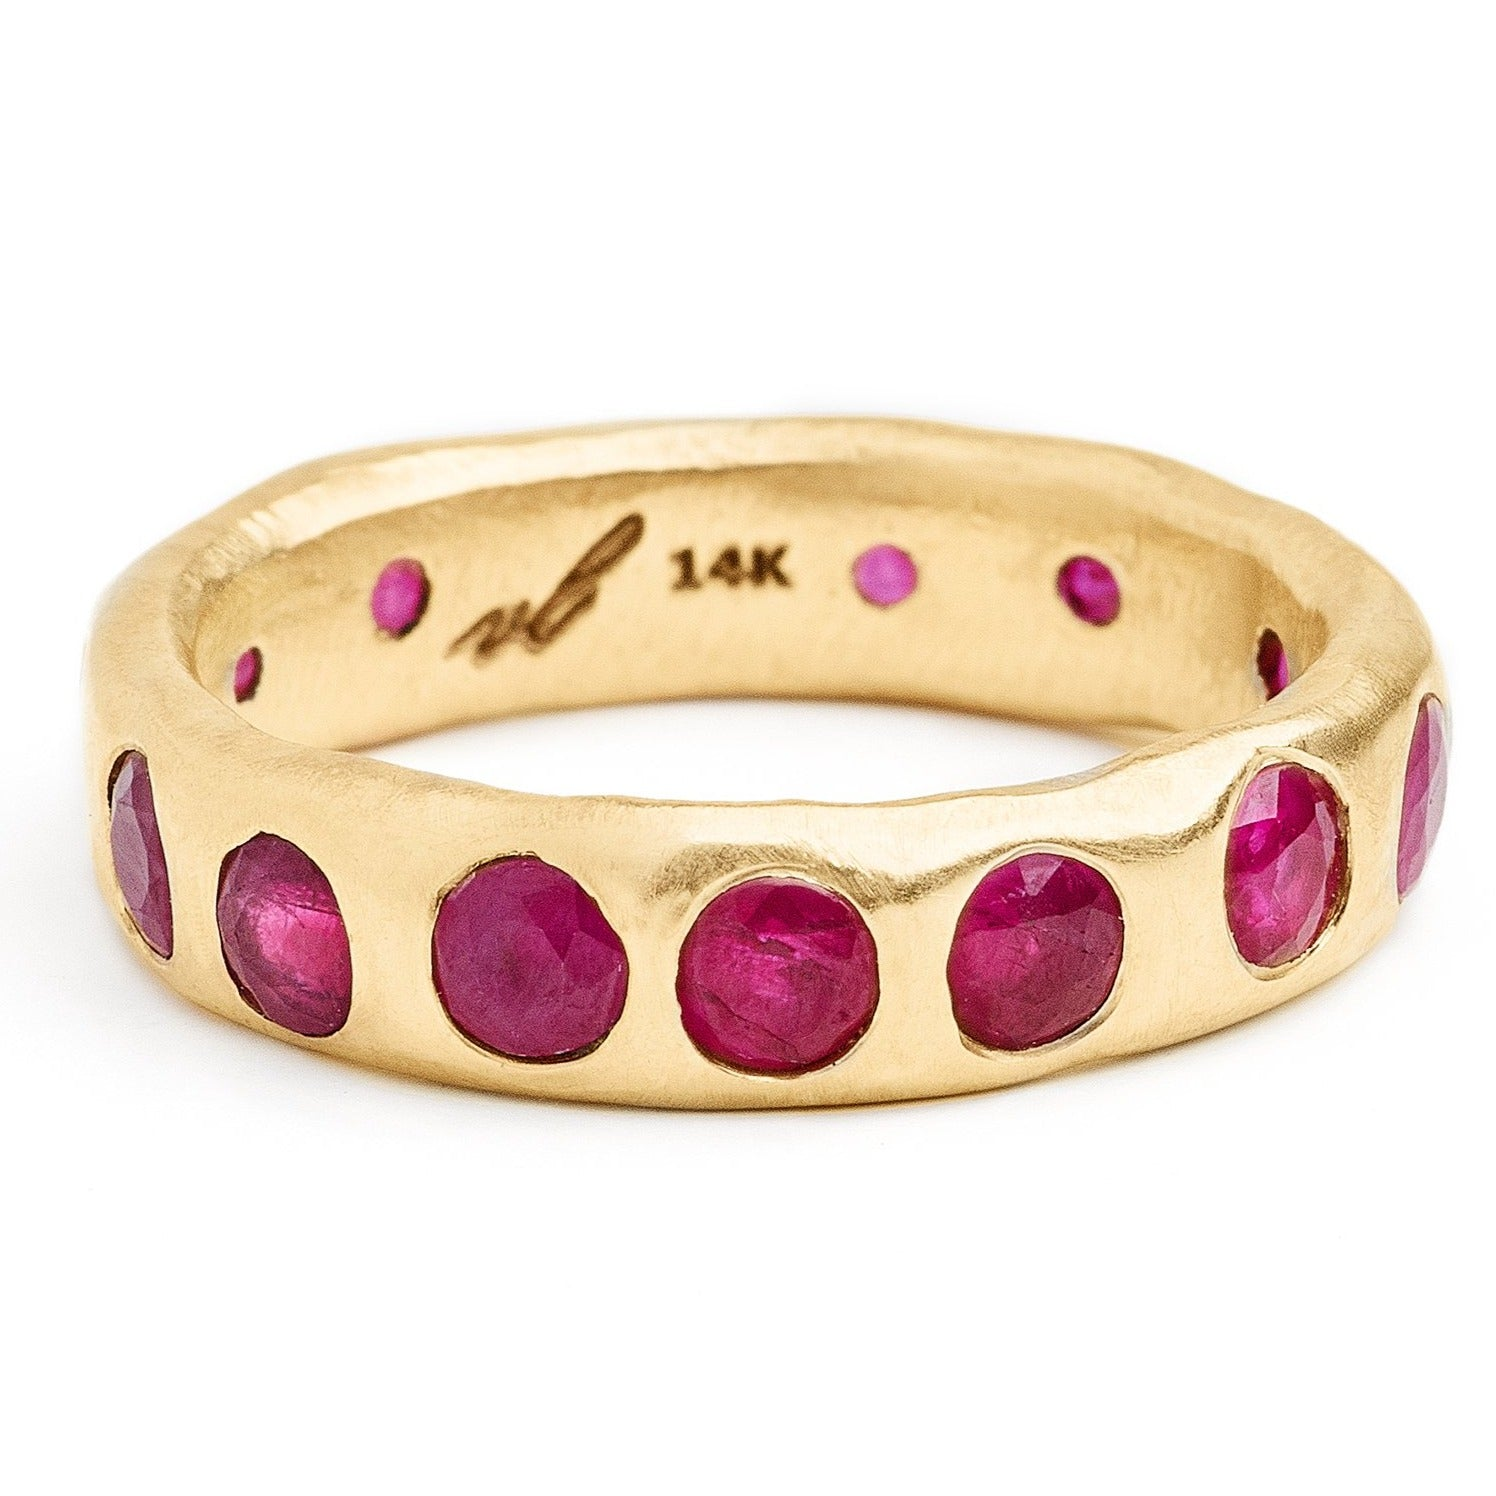 Bright ruby eternity style ring organic eternity band. Alternative wedding bands with ruby